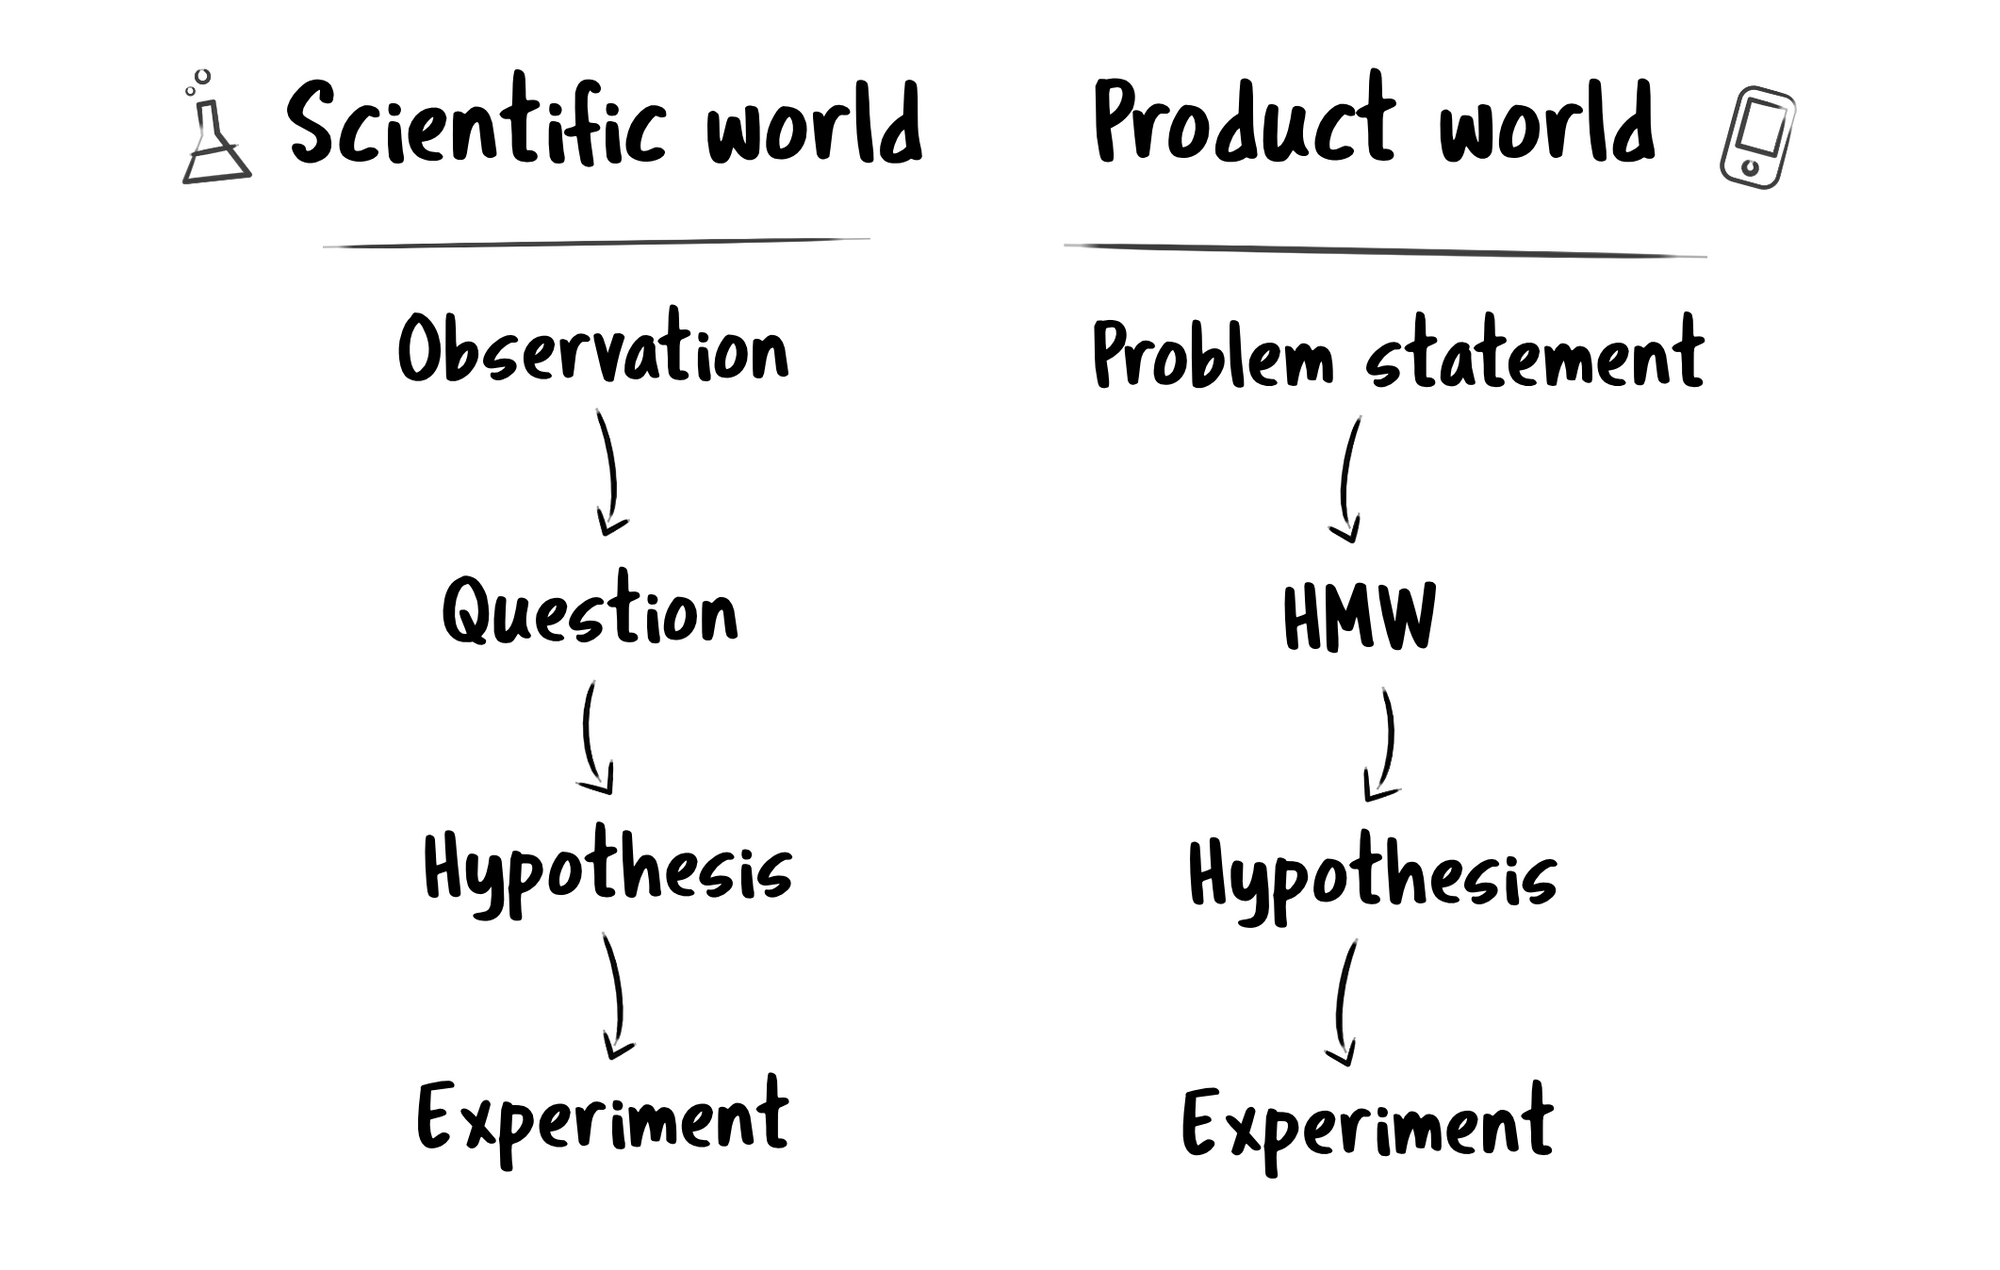 Scientific world and product world